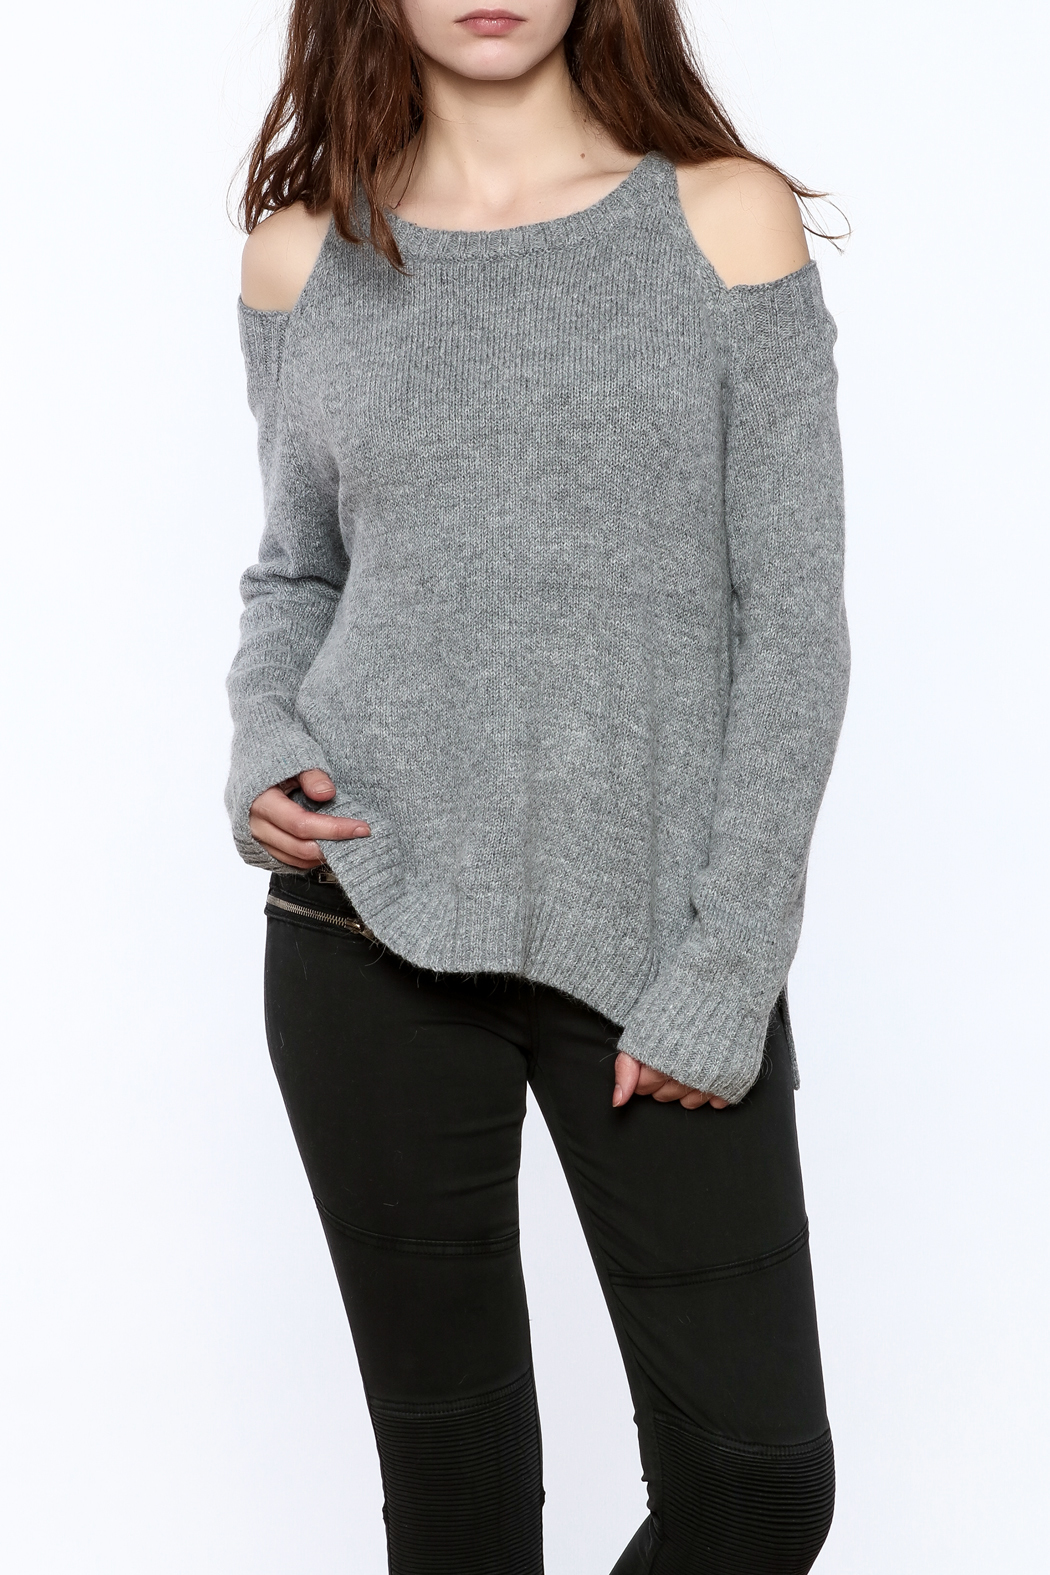 bd8153d7e9aec7 Elan Angora Cold Shoulder Sweater from Chicago by Belle Noire ...